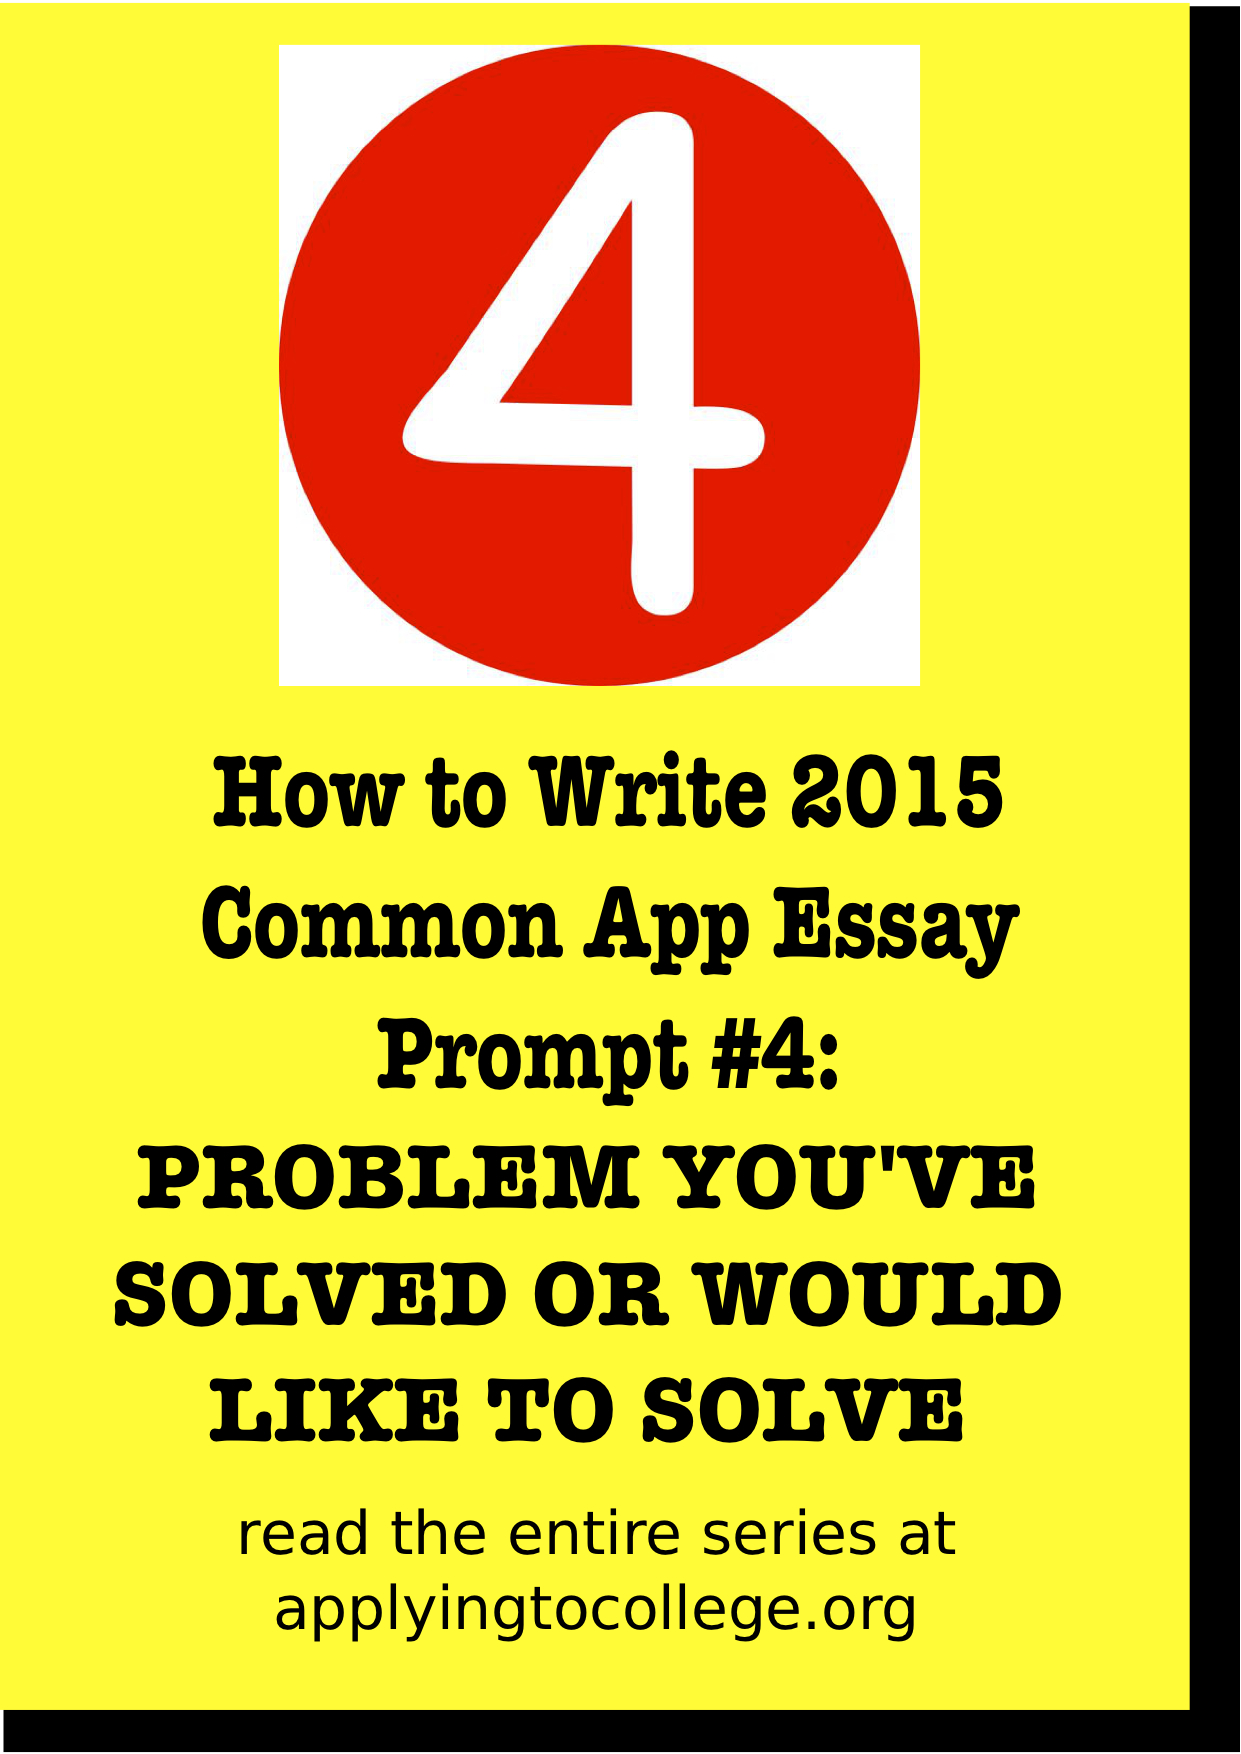 How to Write 2015 Common App Essay #4: Problem You've Solved or ...